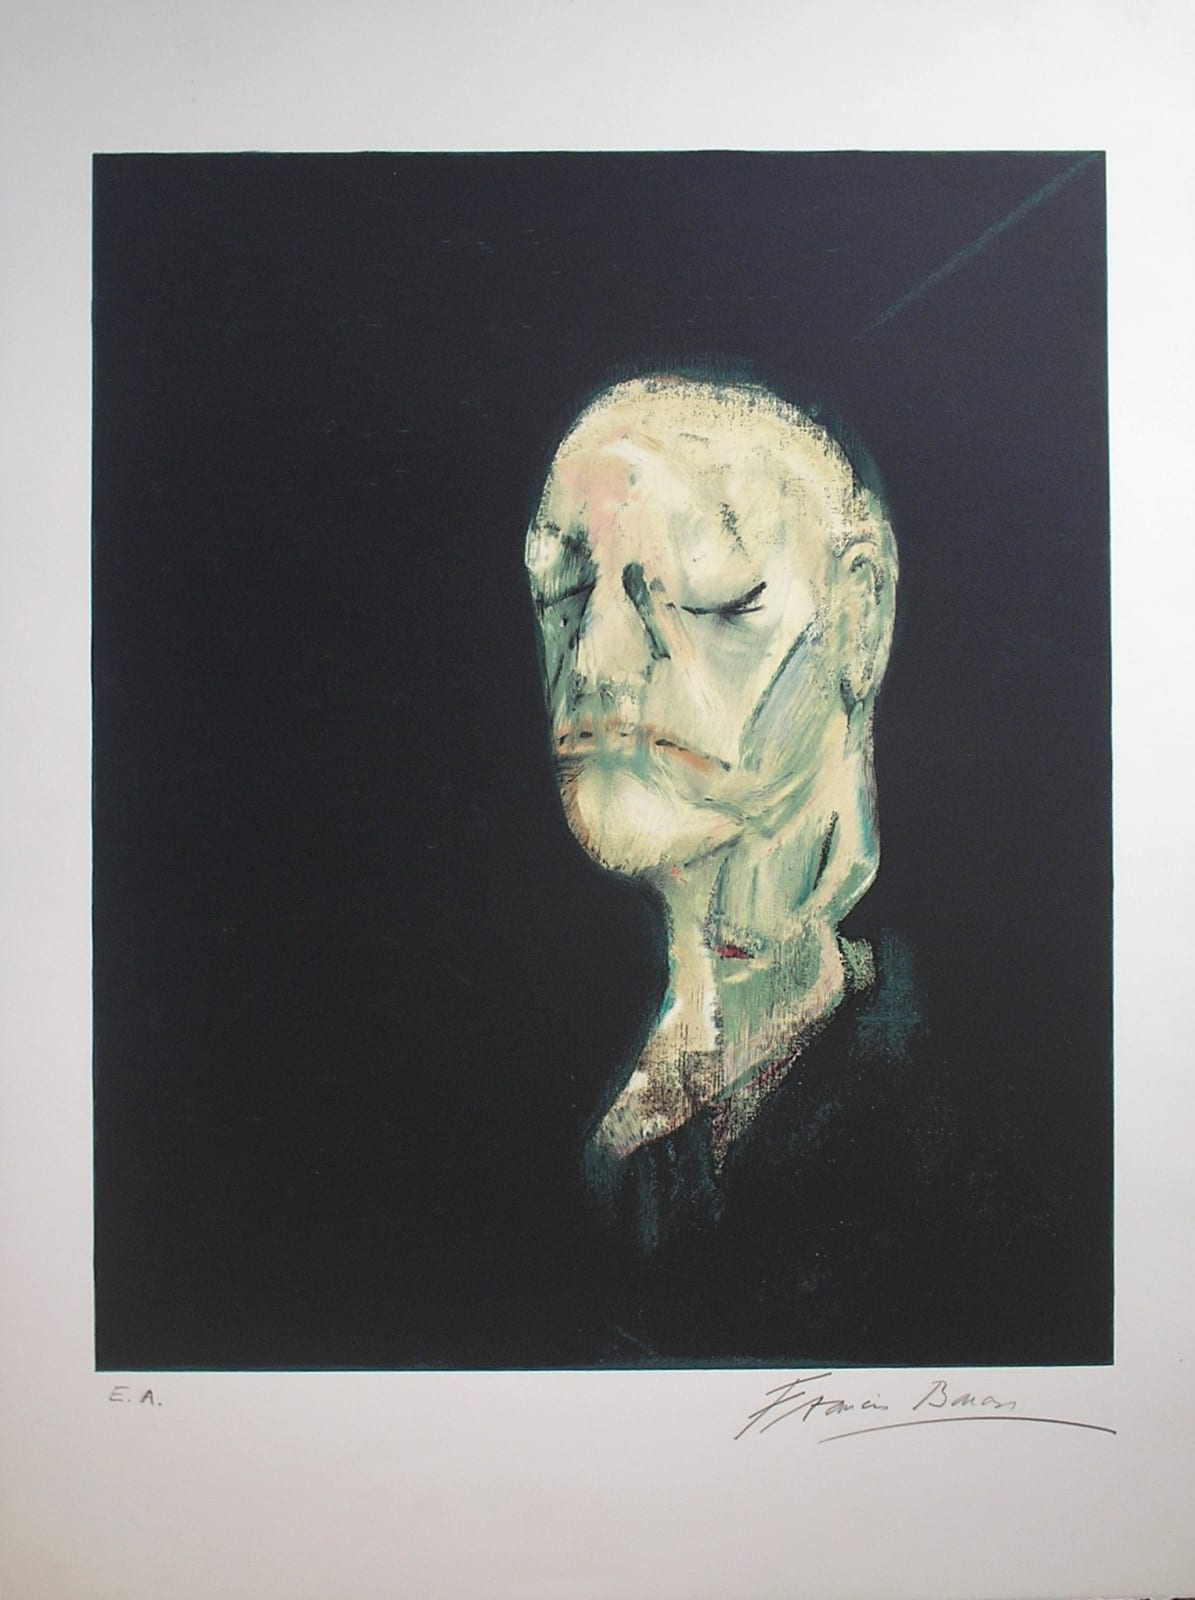 Study after a lifemask of William Blake